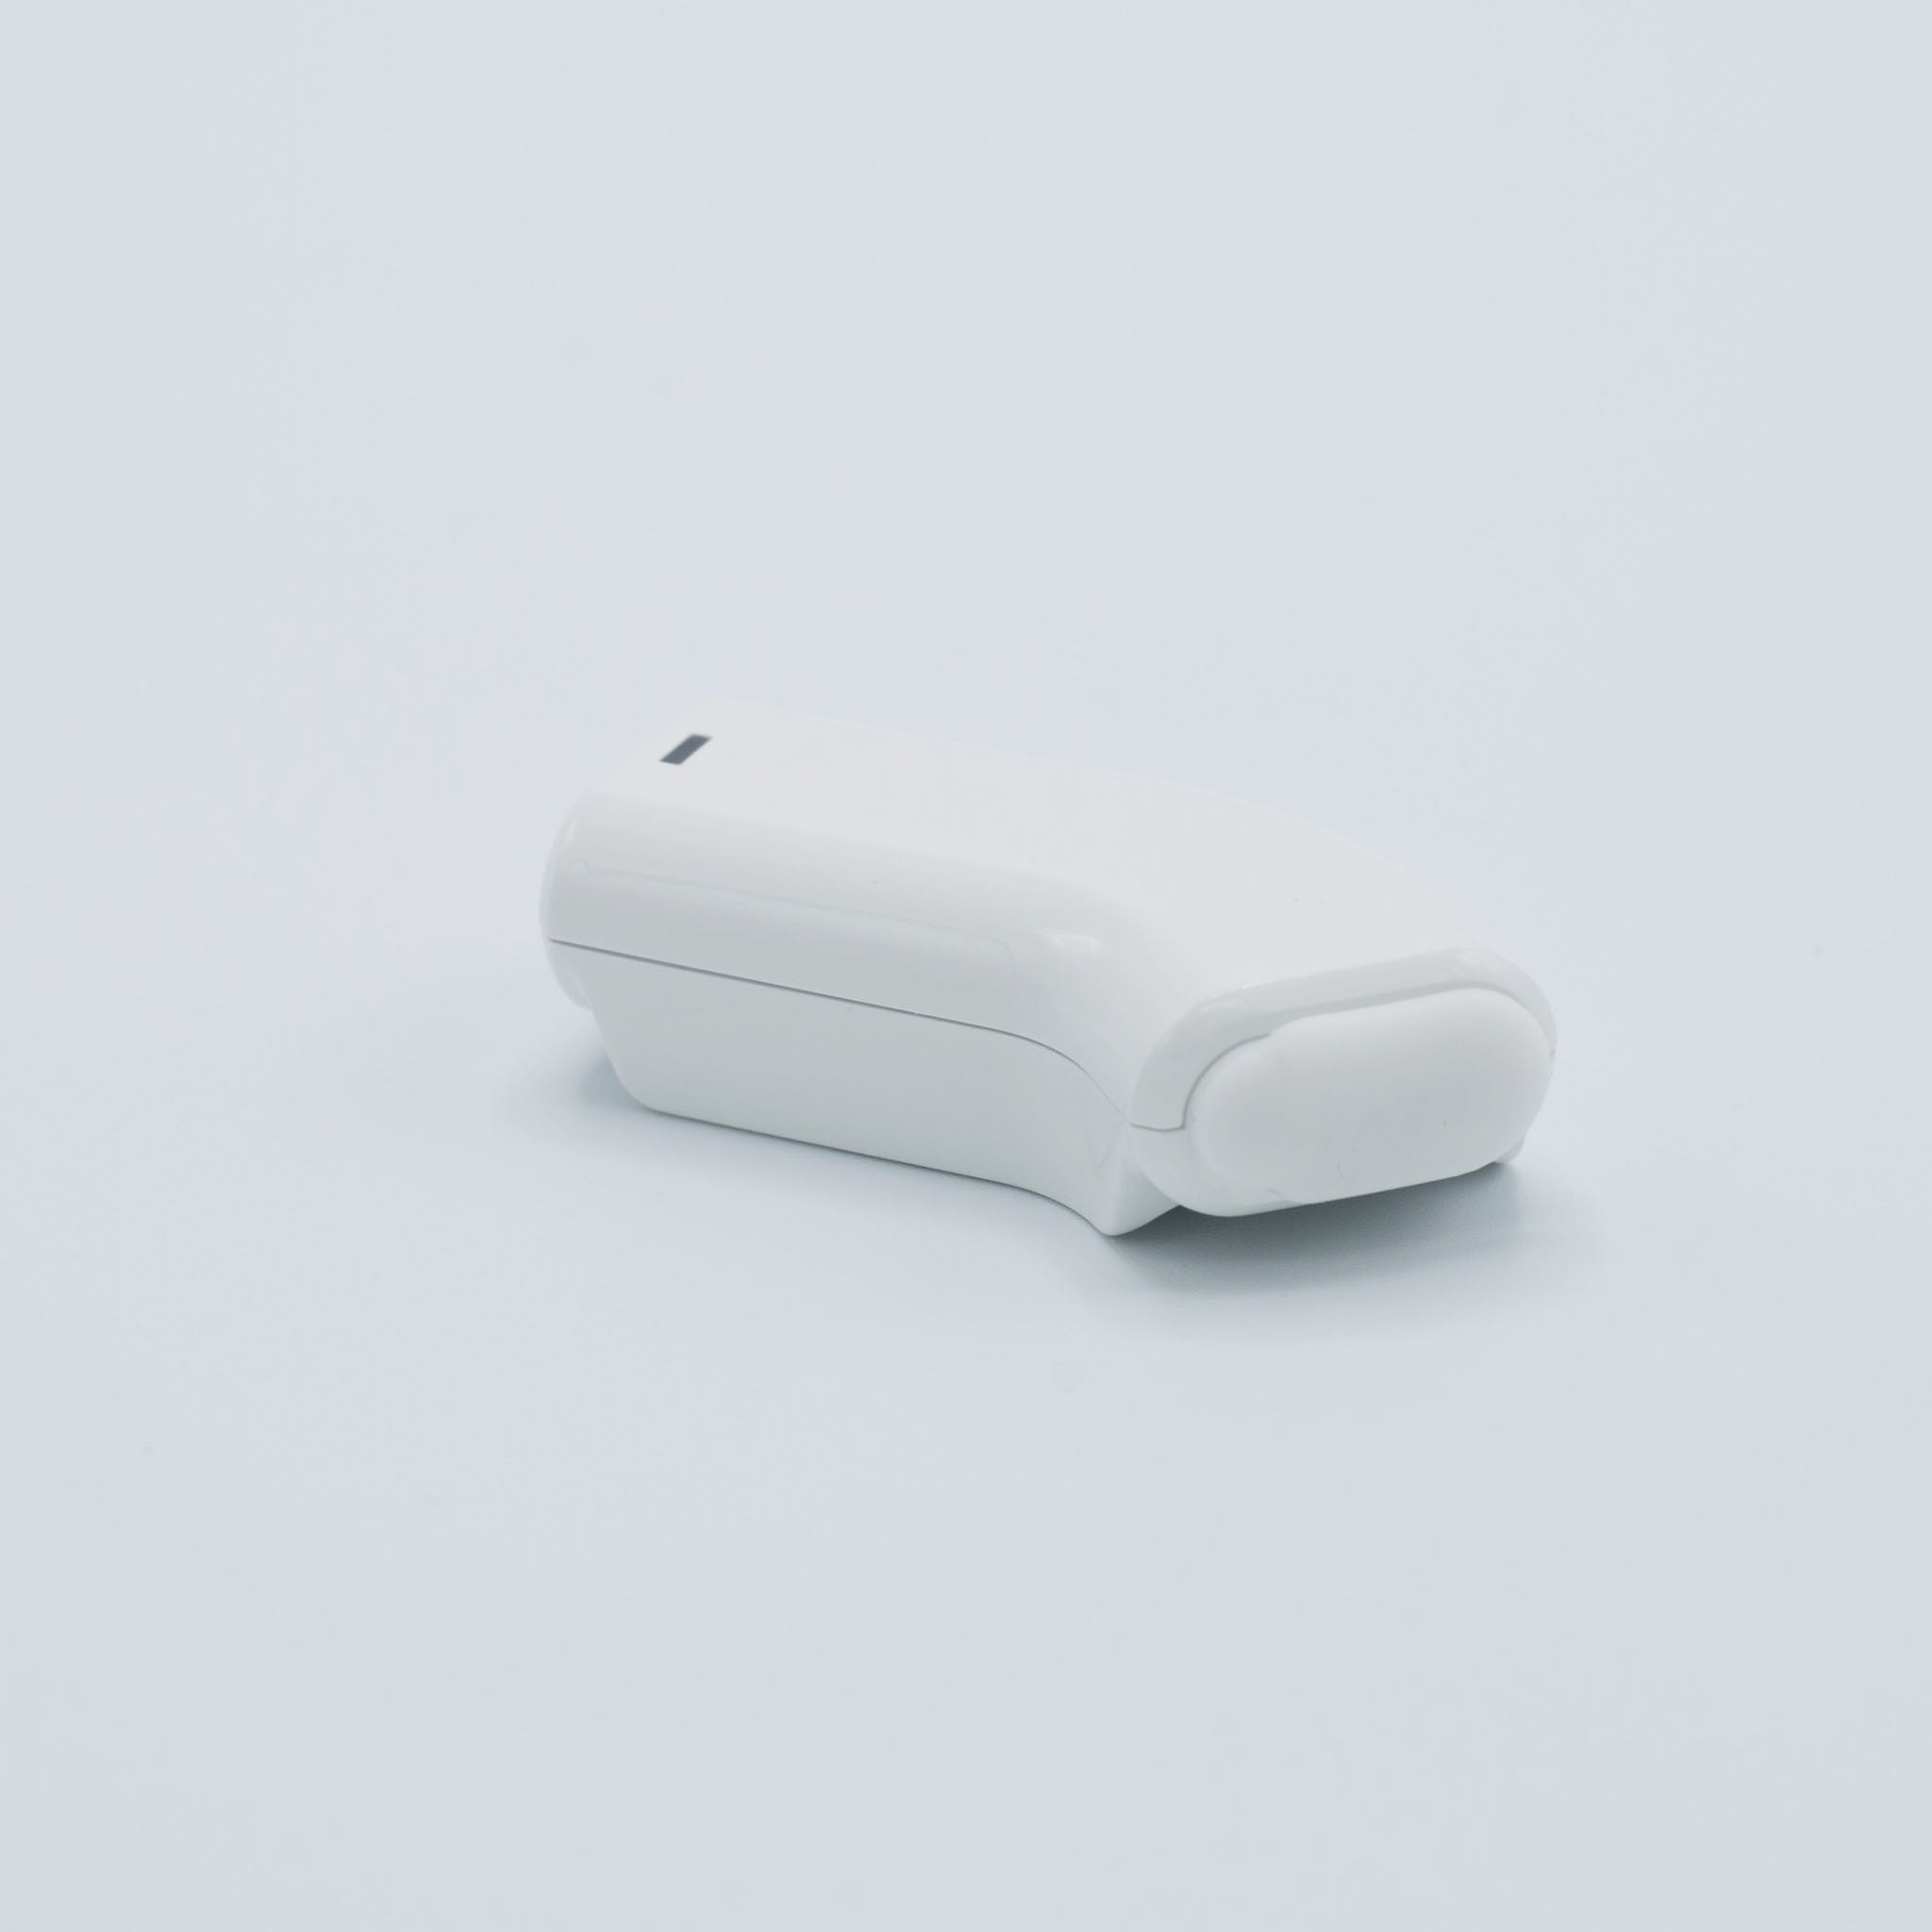 White Wireless Earbud Charging Clip